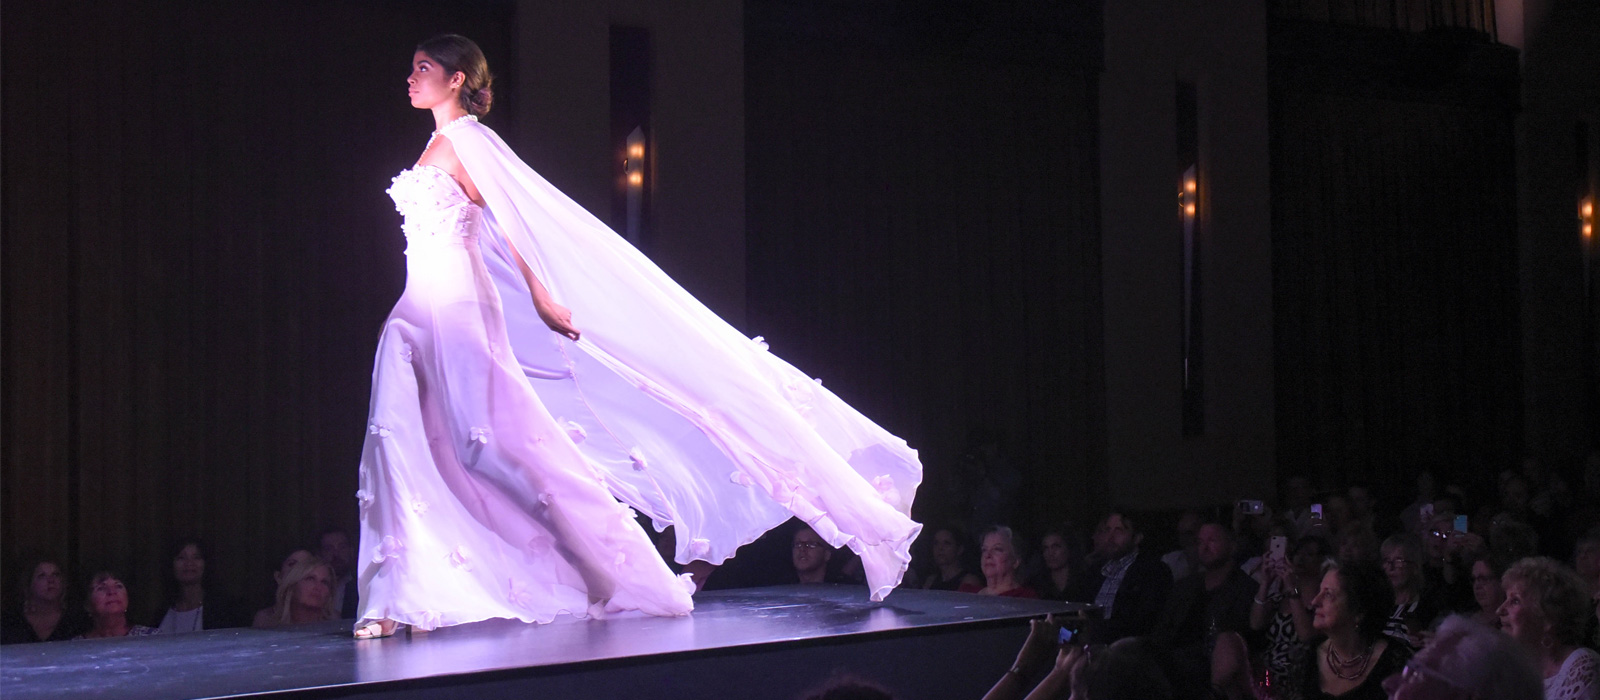 O'More Fashion Show Dazzles Crowd at Packed Franklin Theatre